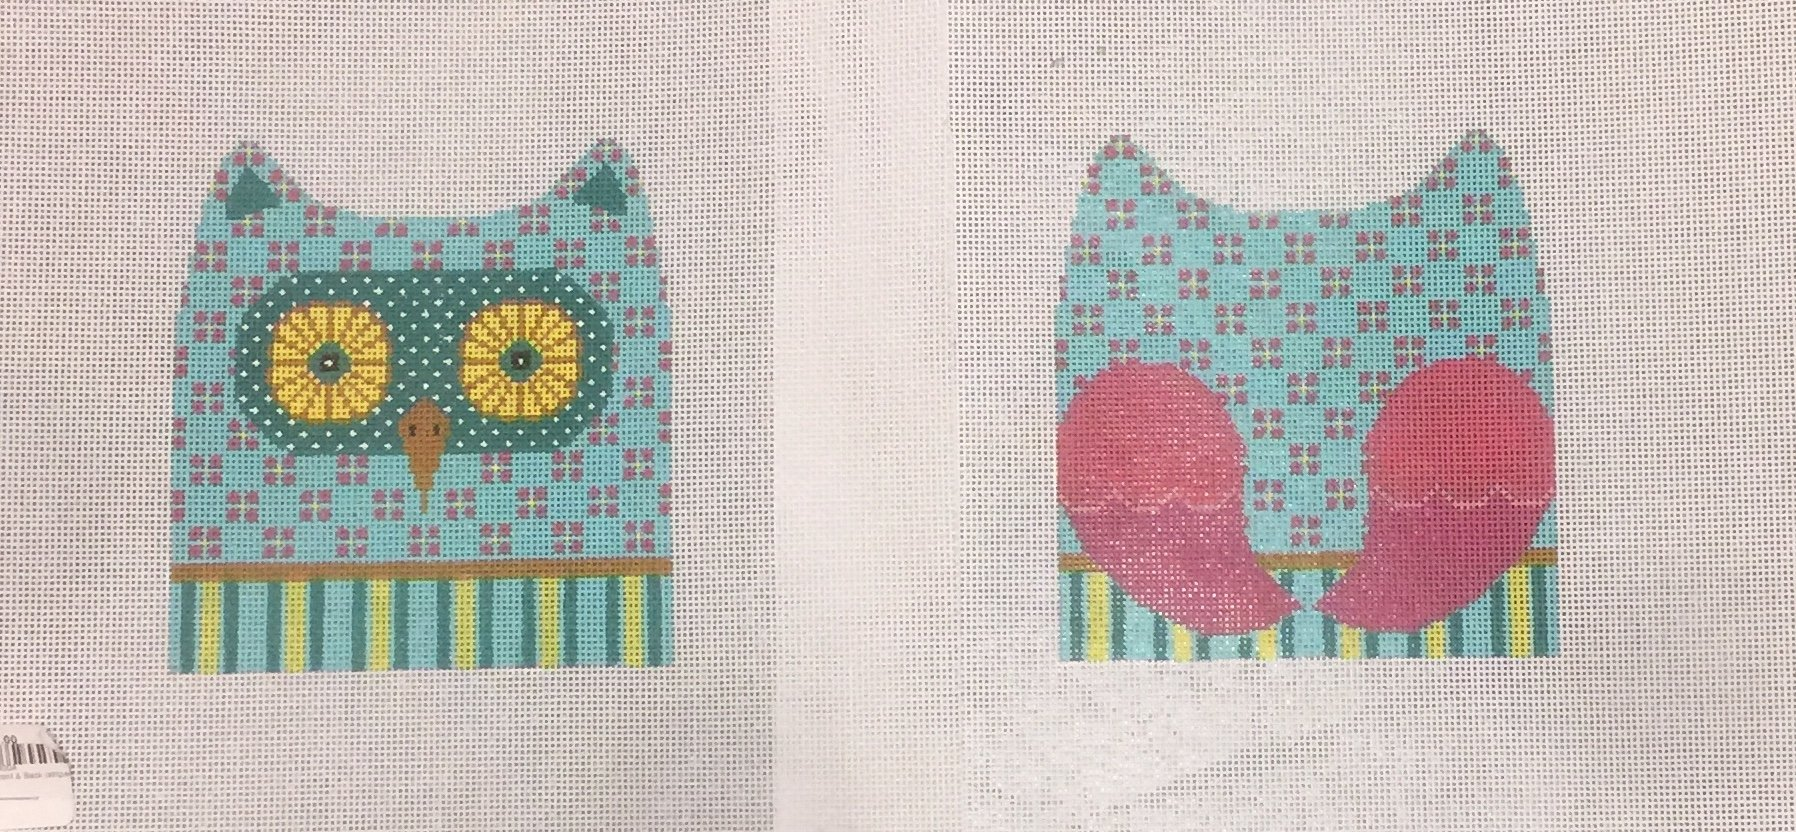 Owl Front & Back (striped)